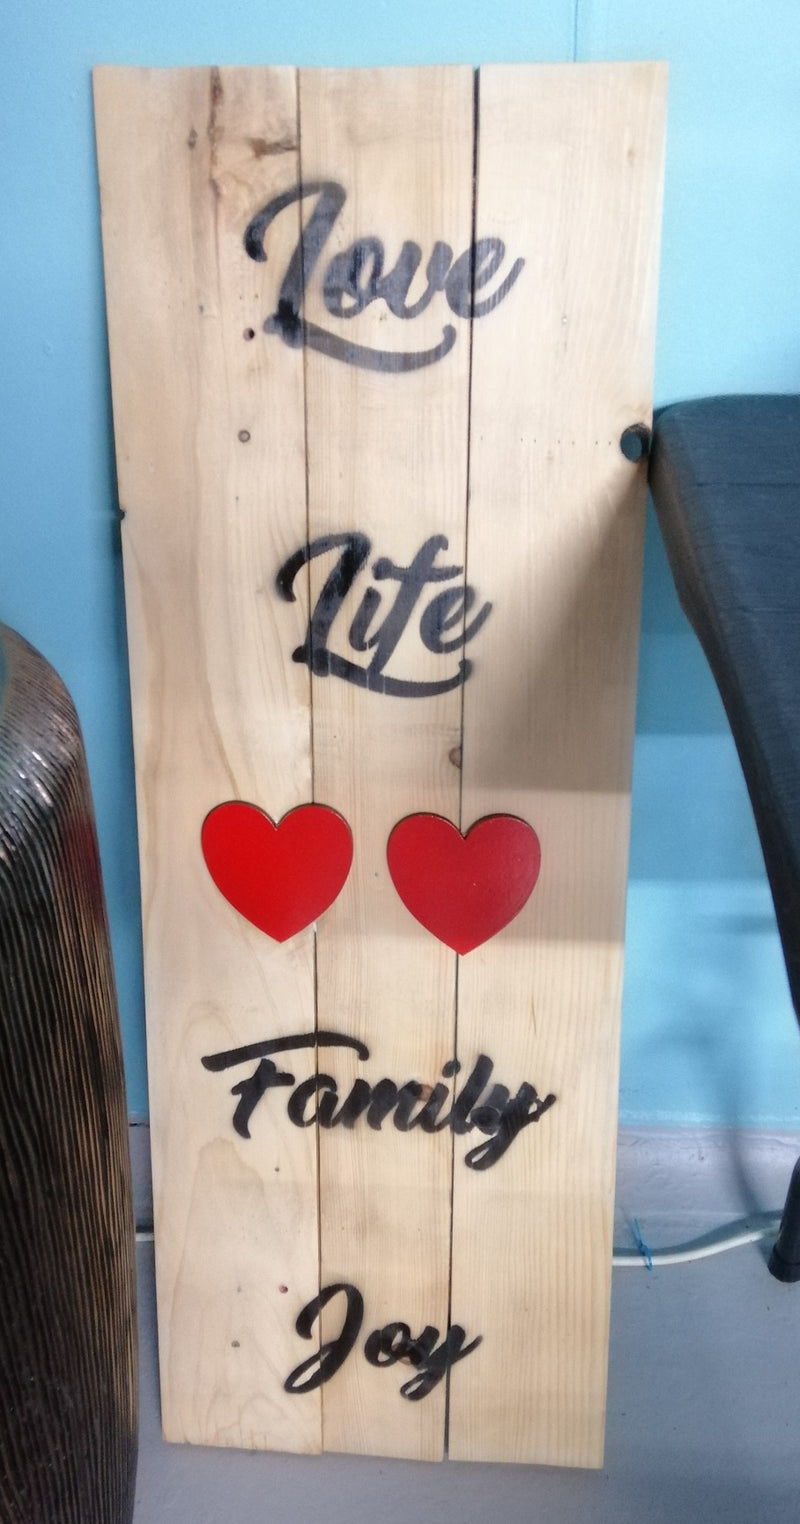 "Wooden Sign ""Love Life Family Joy"" with hearts (95cm x 35cm)"